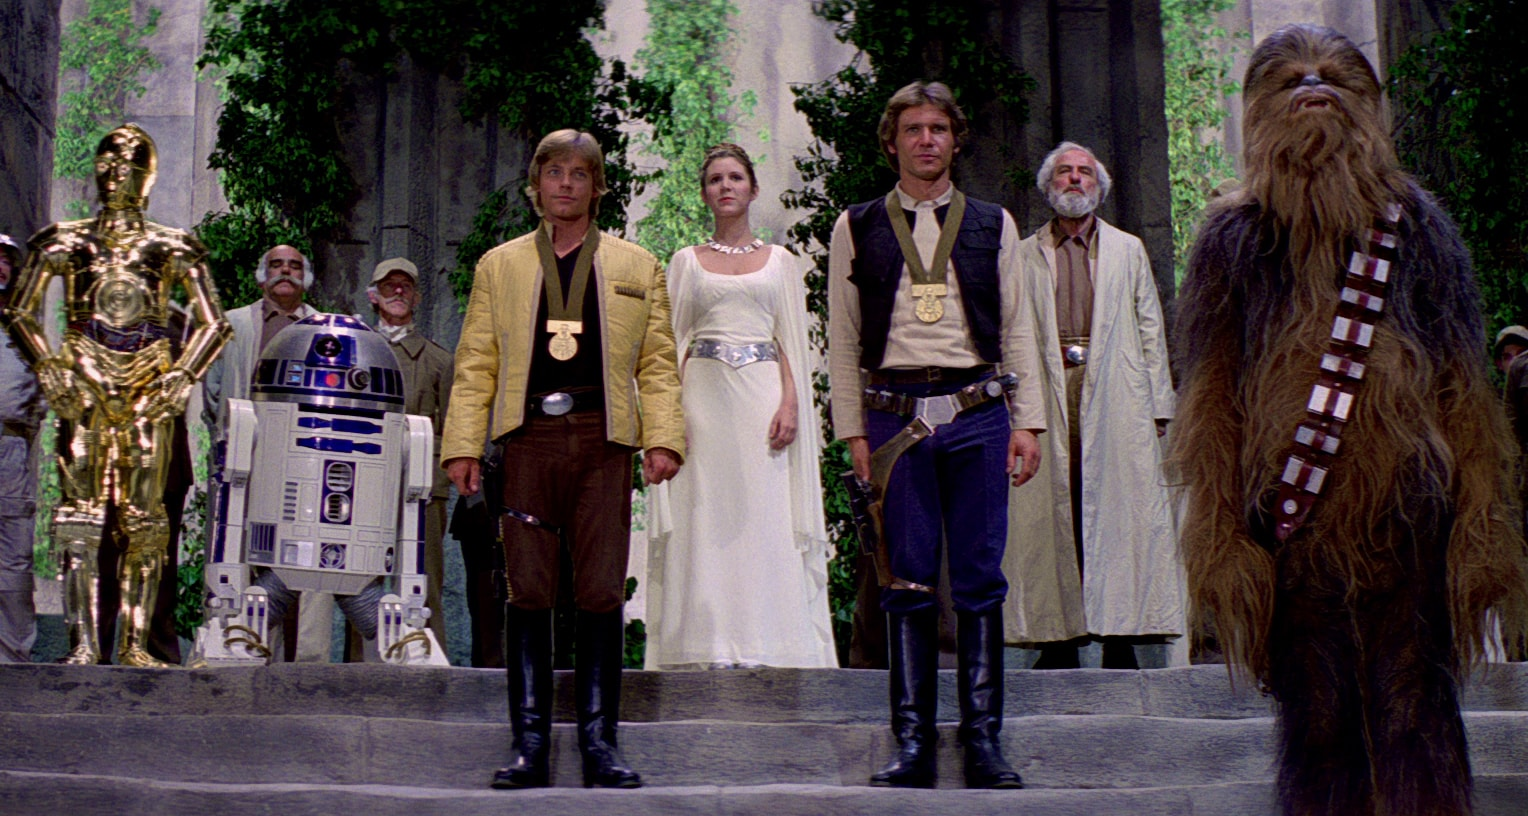 The Star Wars fandom is schismed and fatigued. Diversifying from blockbuster films into television can offer fresher experiences for multiple audiences.